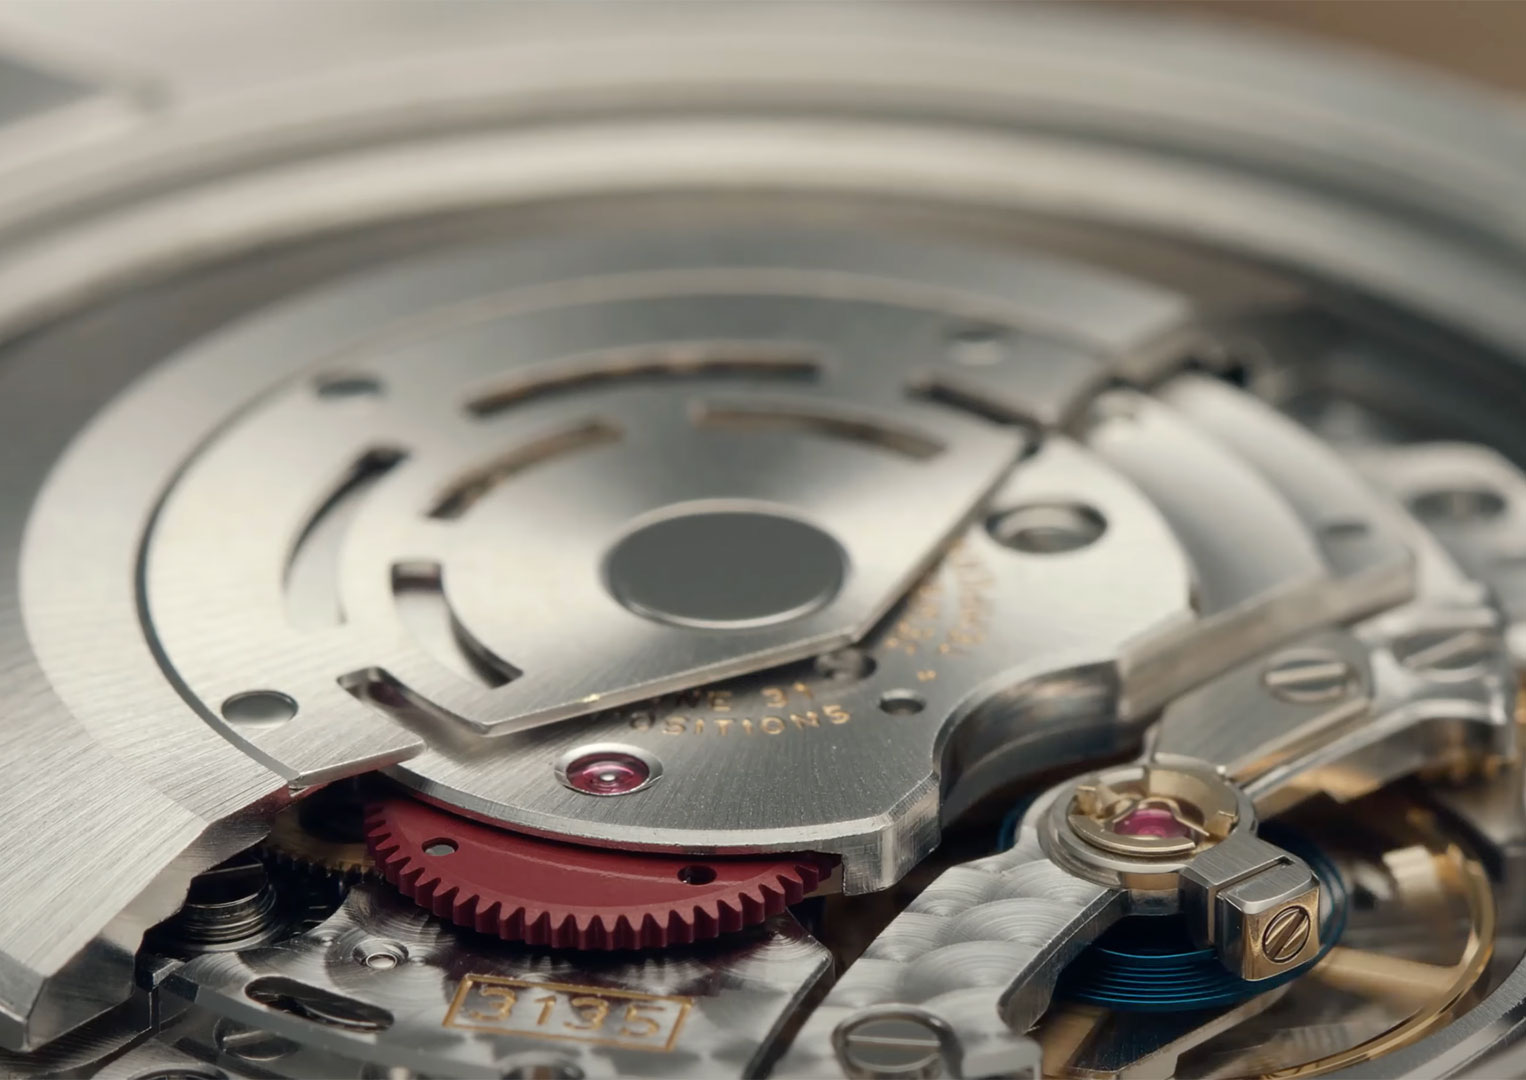 The Rolex Submariner 116613 LN features the Calibre 3135